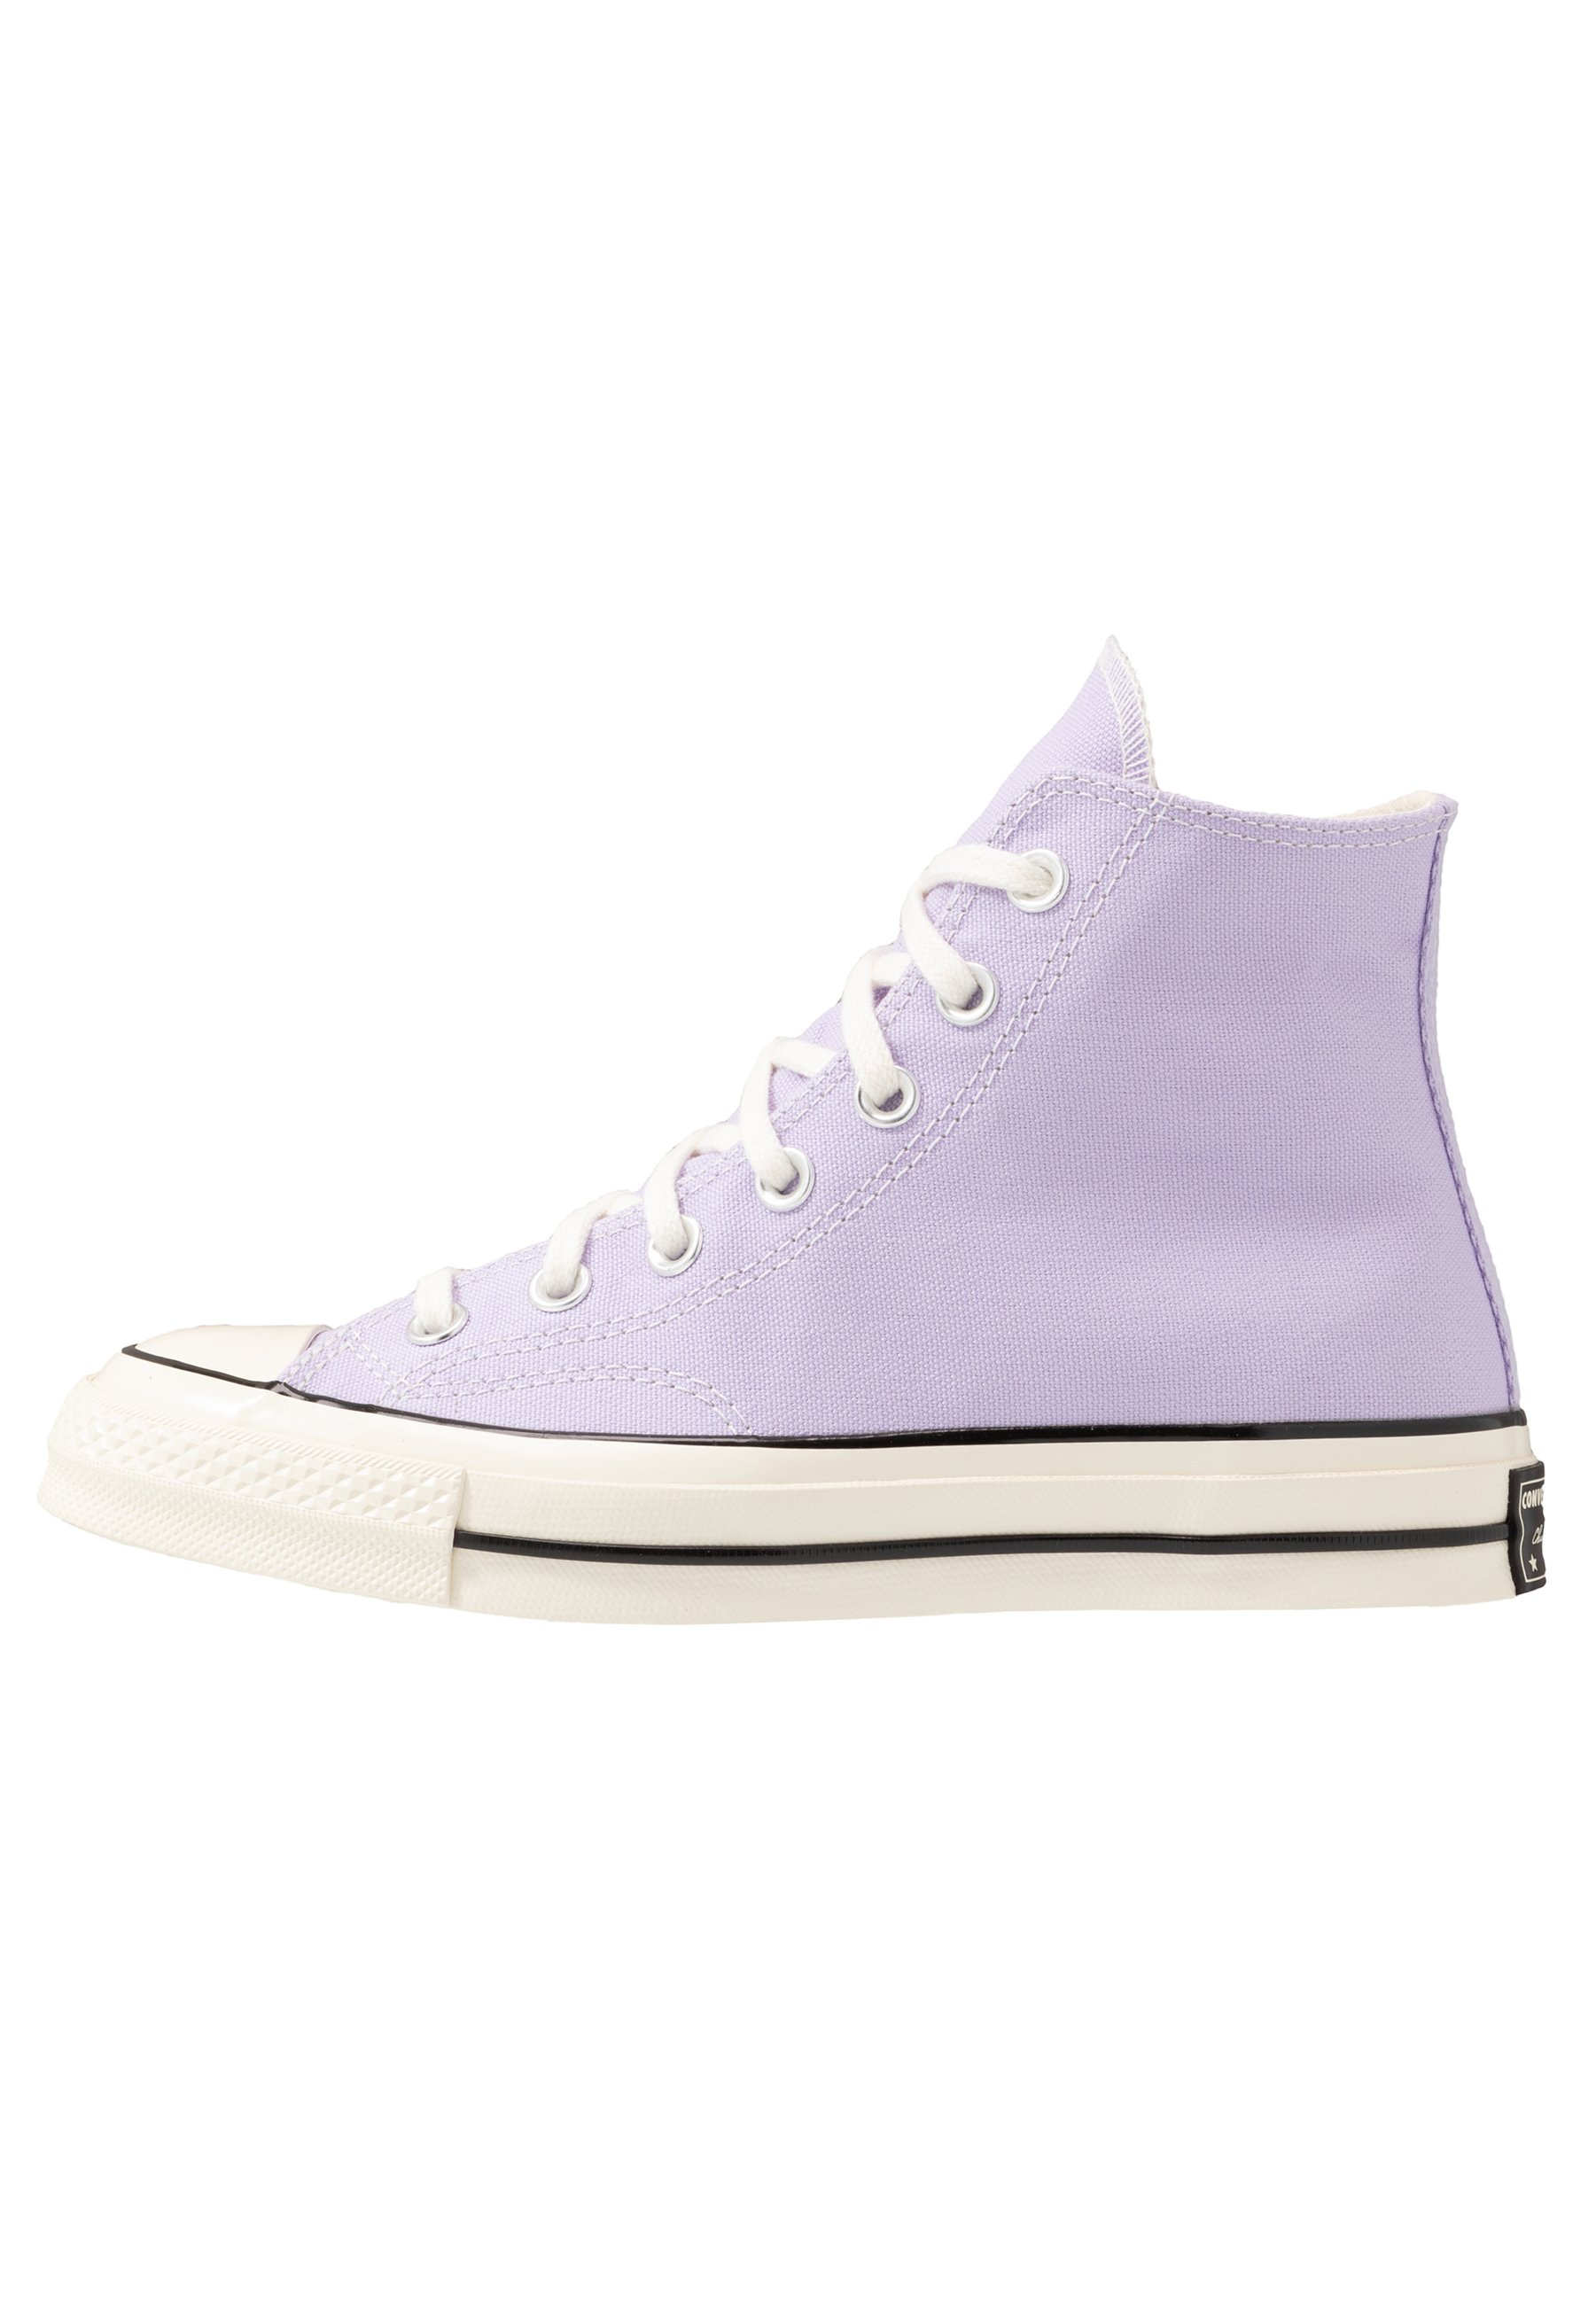 converse all star femme violette